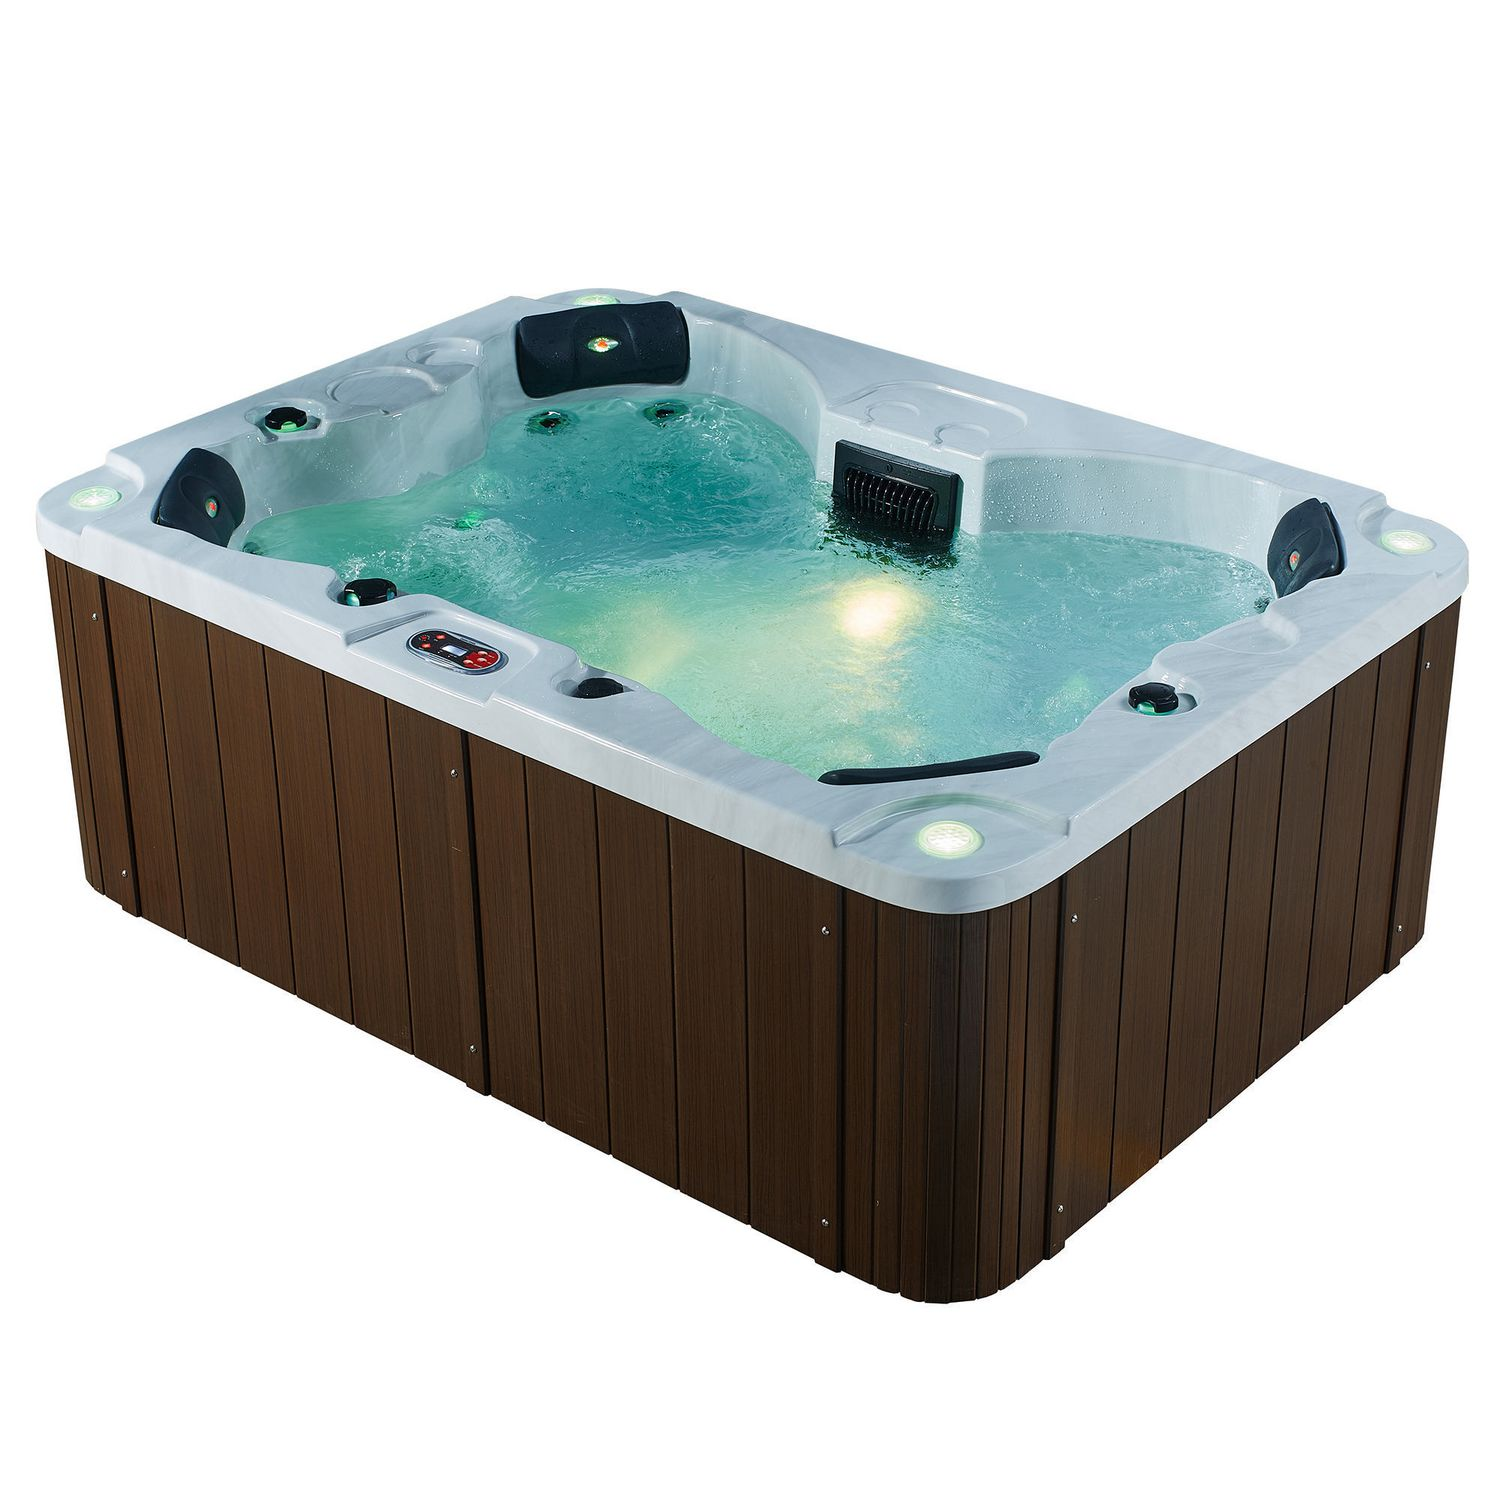 tub hot pr outside sided spas and comfy person wellness costco jacuzzis amazing appealing soft square dr white design evolution tubs reviews brown outdoor swim new for ideas with saltwater sale inexpensive